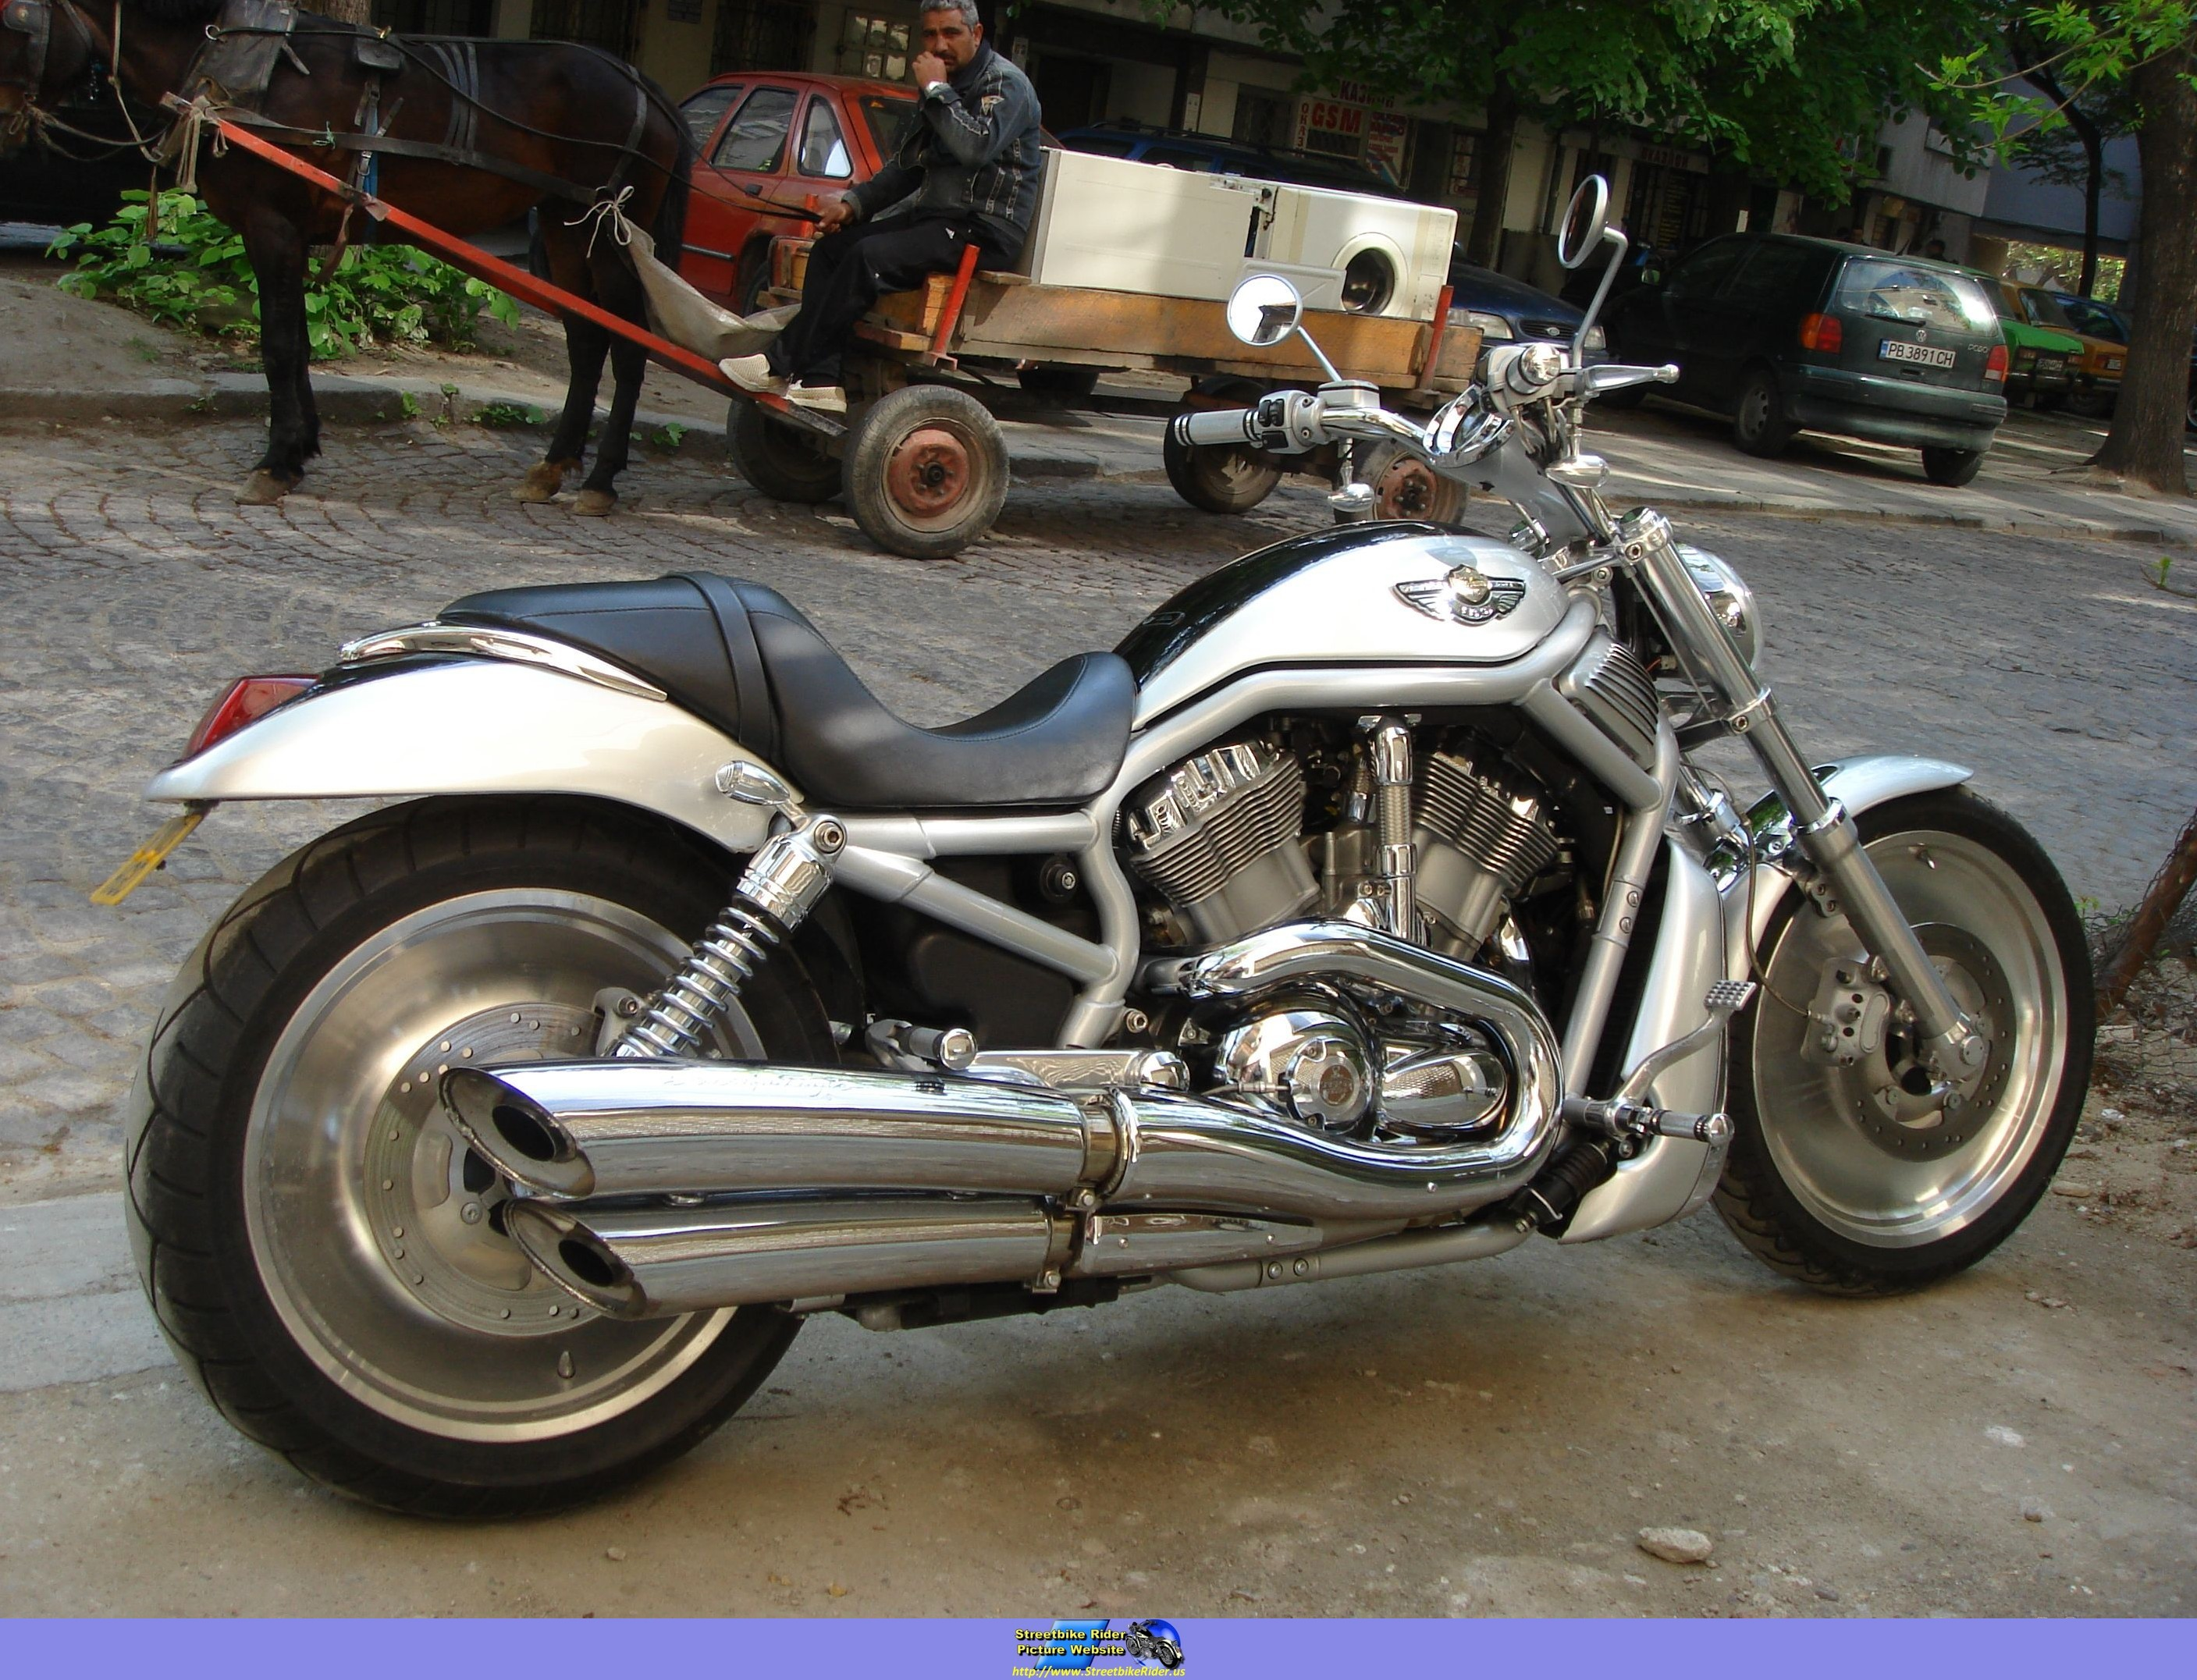 Incredible 2003 Harley Davidson Vrsca V Rod Image 5 Lamtechconsult Wood Chair Design Ideas Lamtechconsultcom